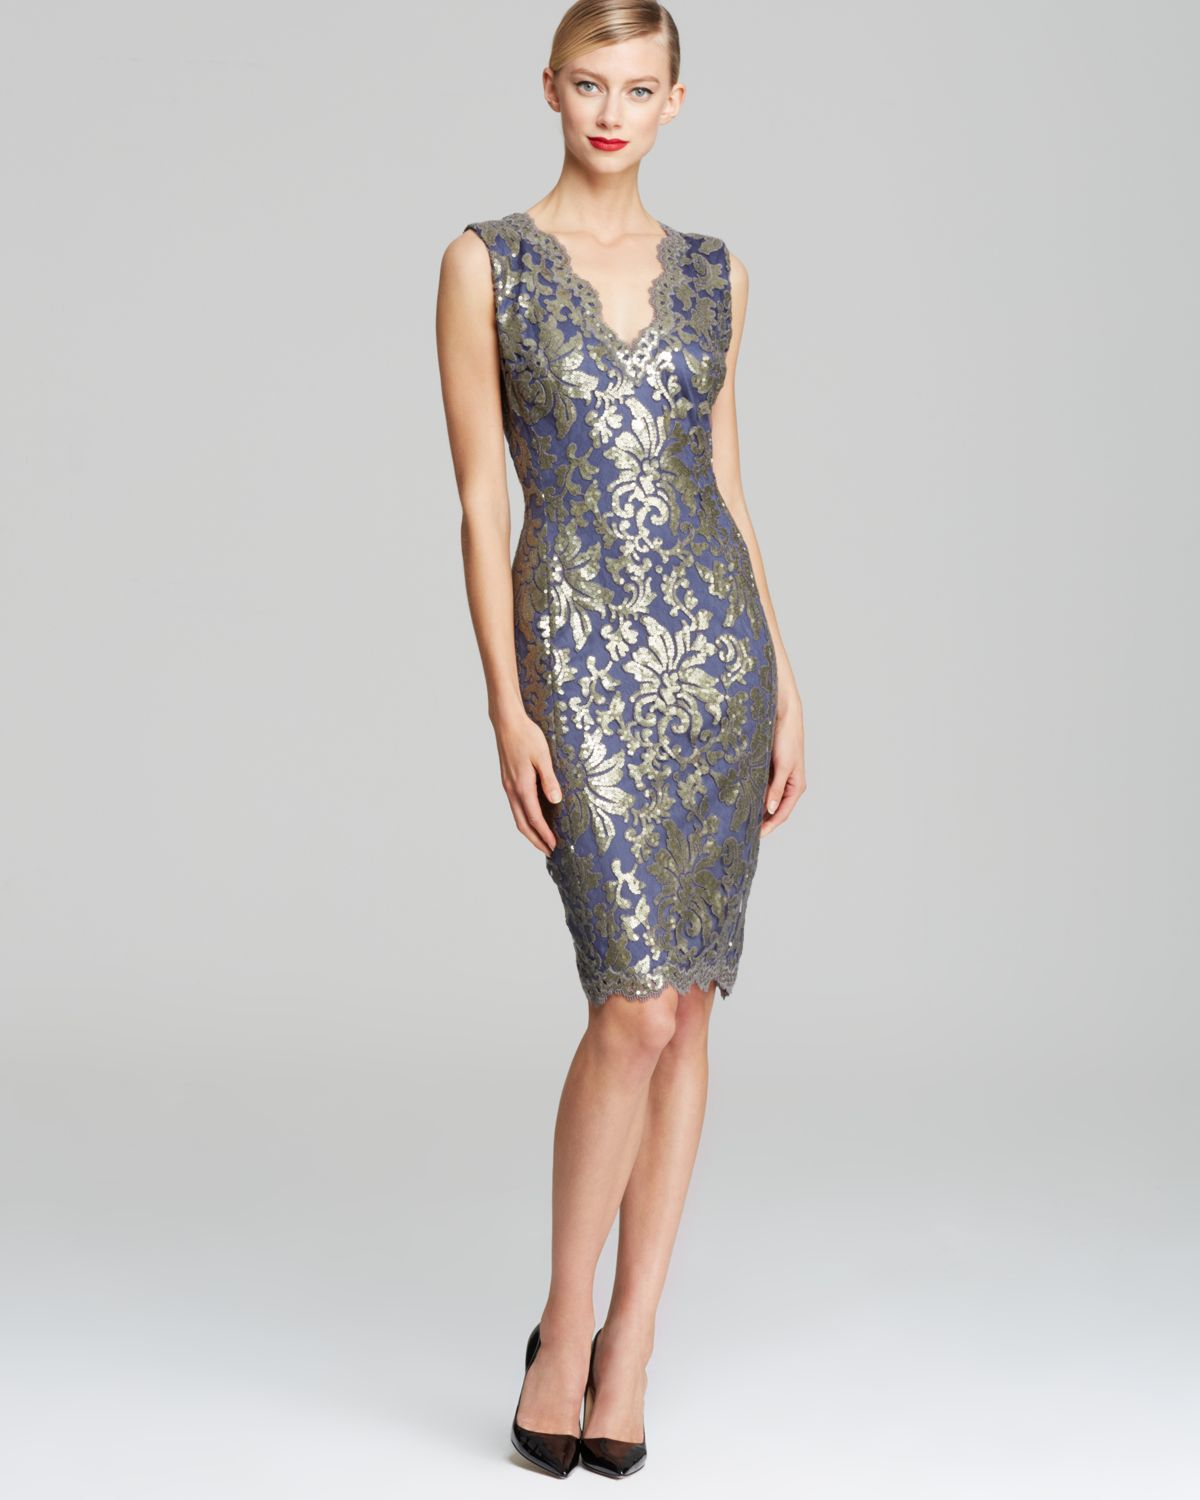 255db0ec2a Tadashi Shoji V Neck Sequin Embroidered Shift Dress Sleeveless in ...